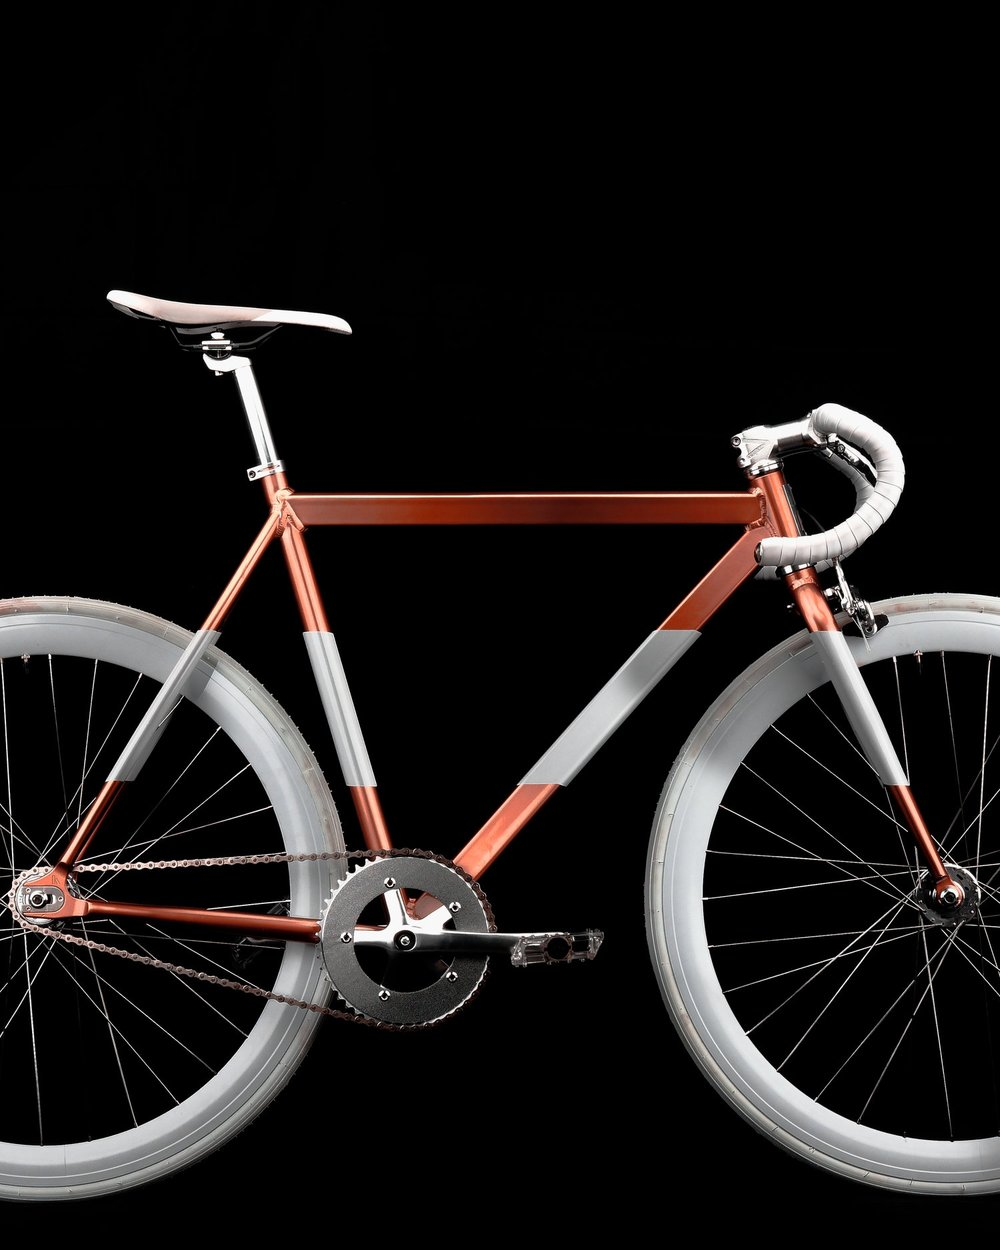 askel rose - First bike of 2018. Available both in the US and UAE warehouses.